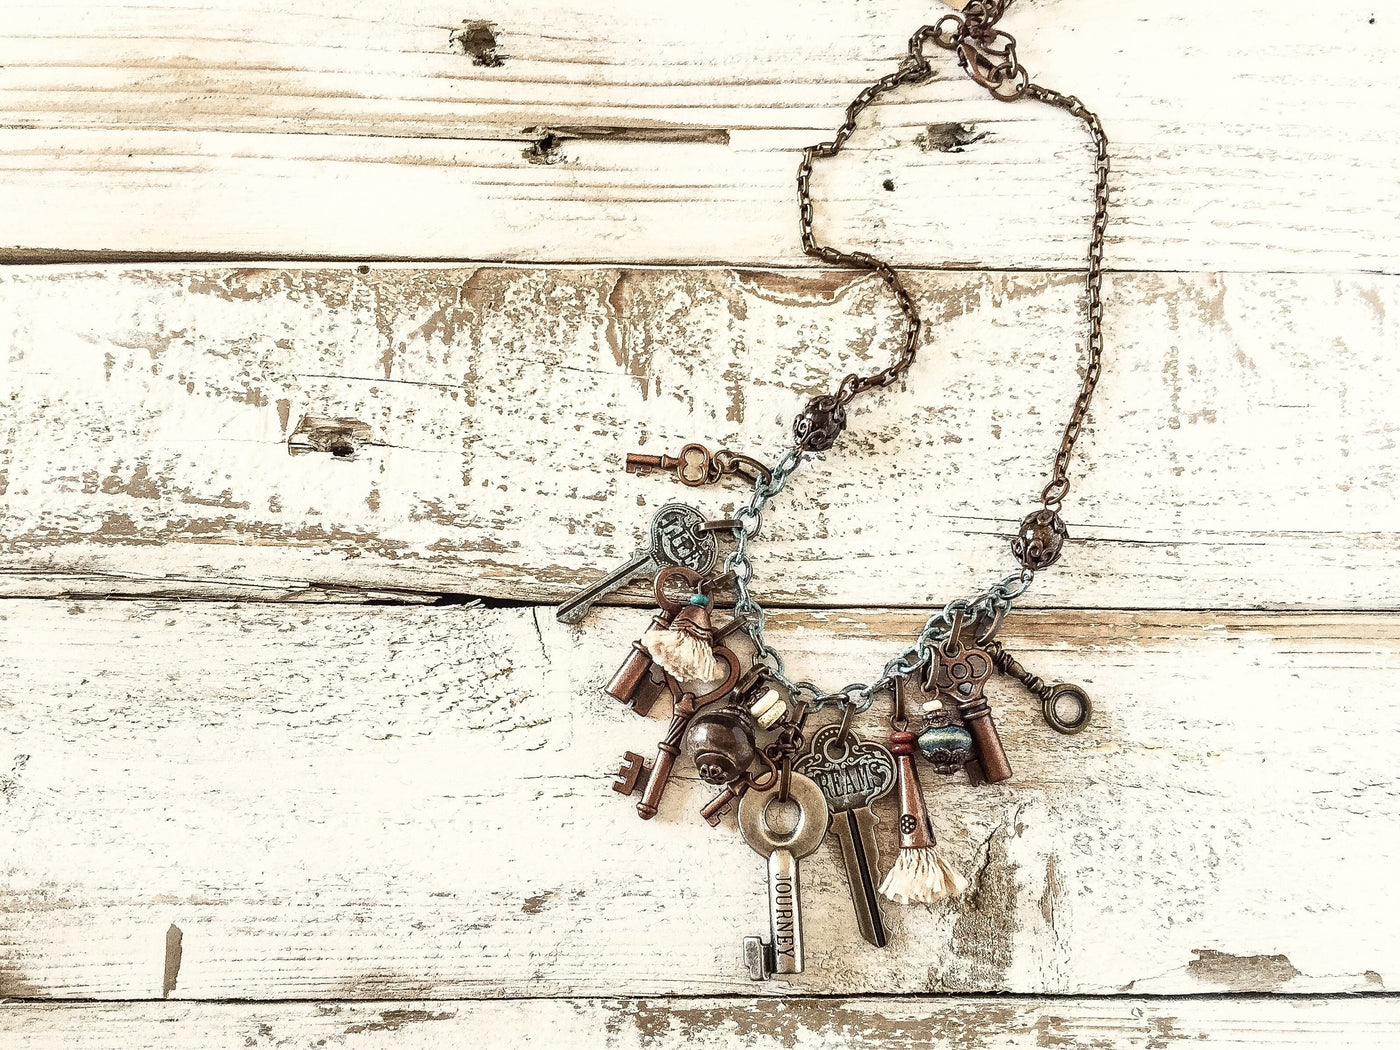 Boho Key Necklace, Boho Charm Vintage Necklace, Key Lover Message Necklace, Skeleton Stamped Key Necklace, N056